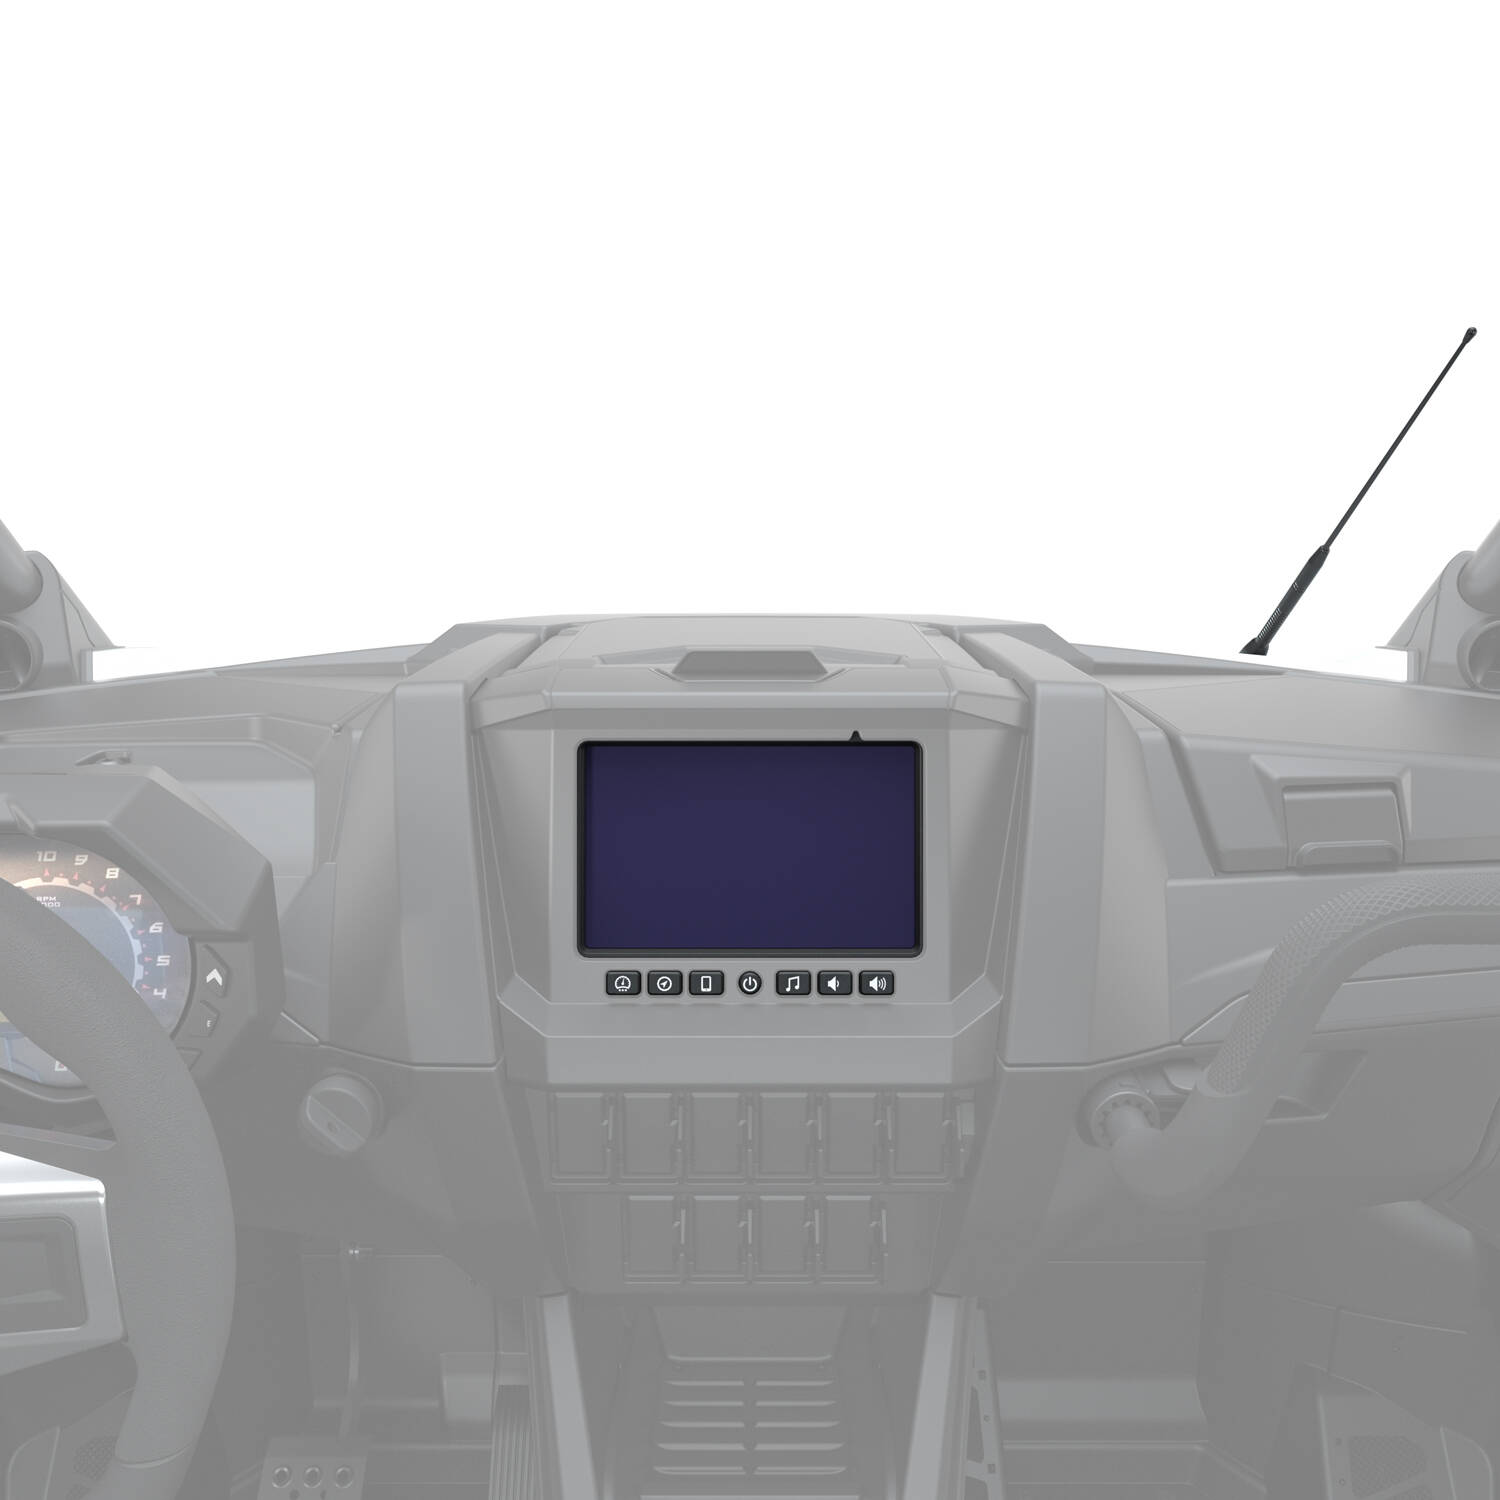 "Ride Command 7"" Display"